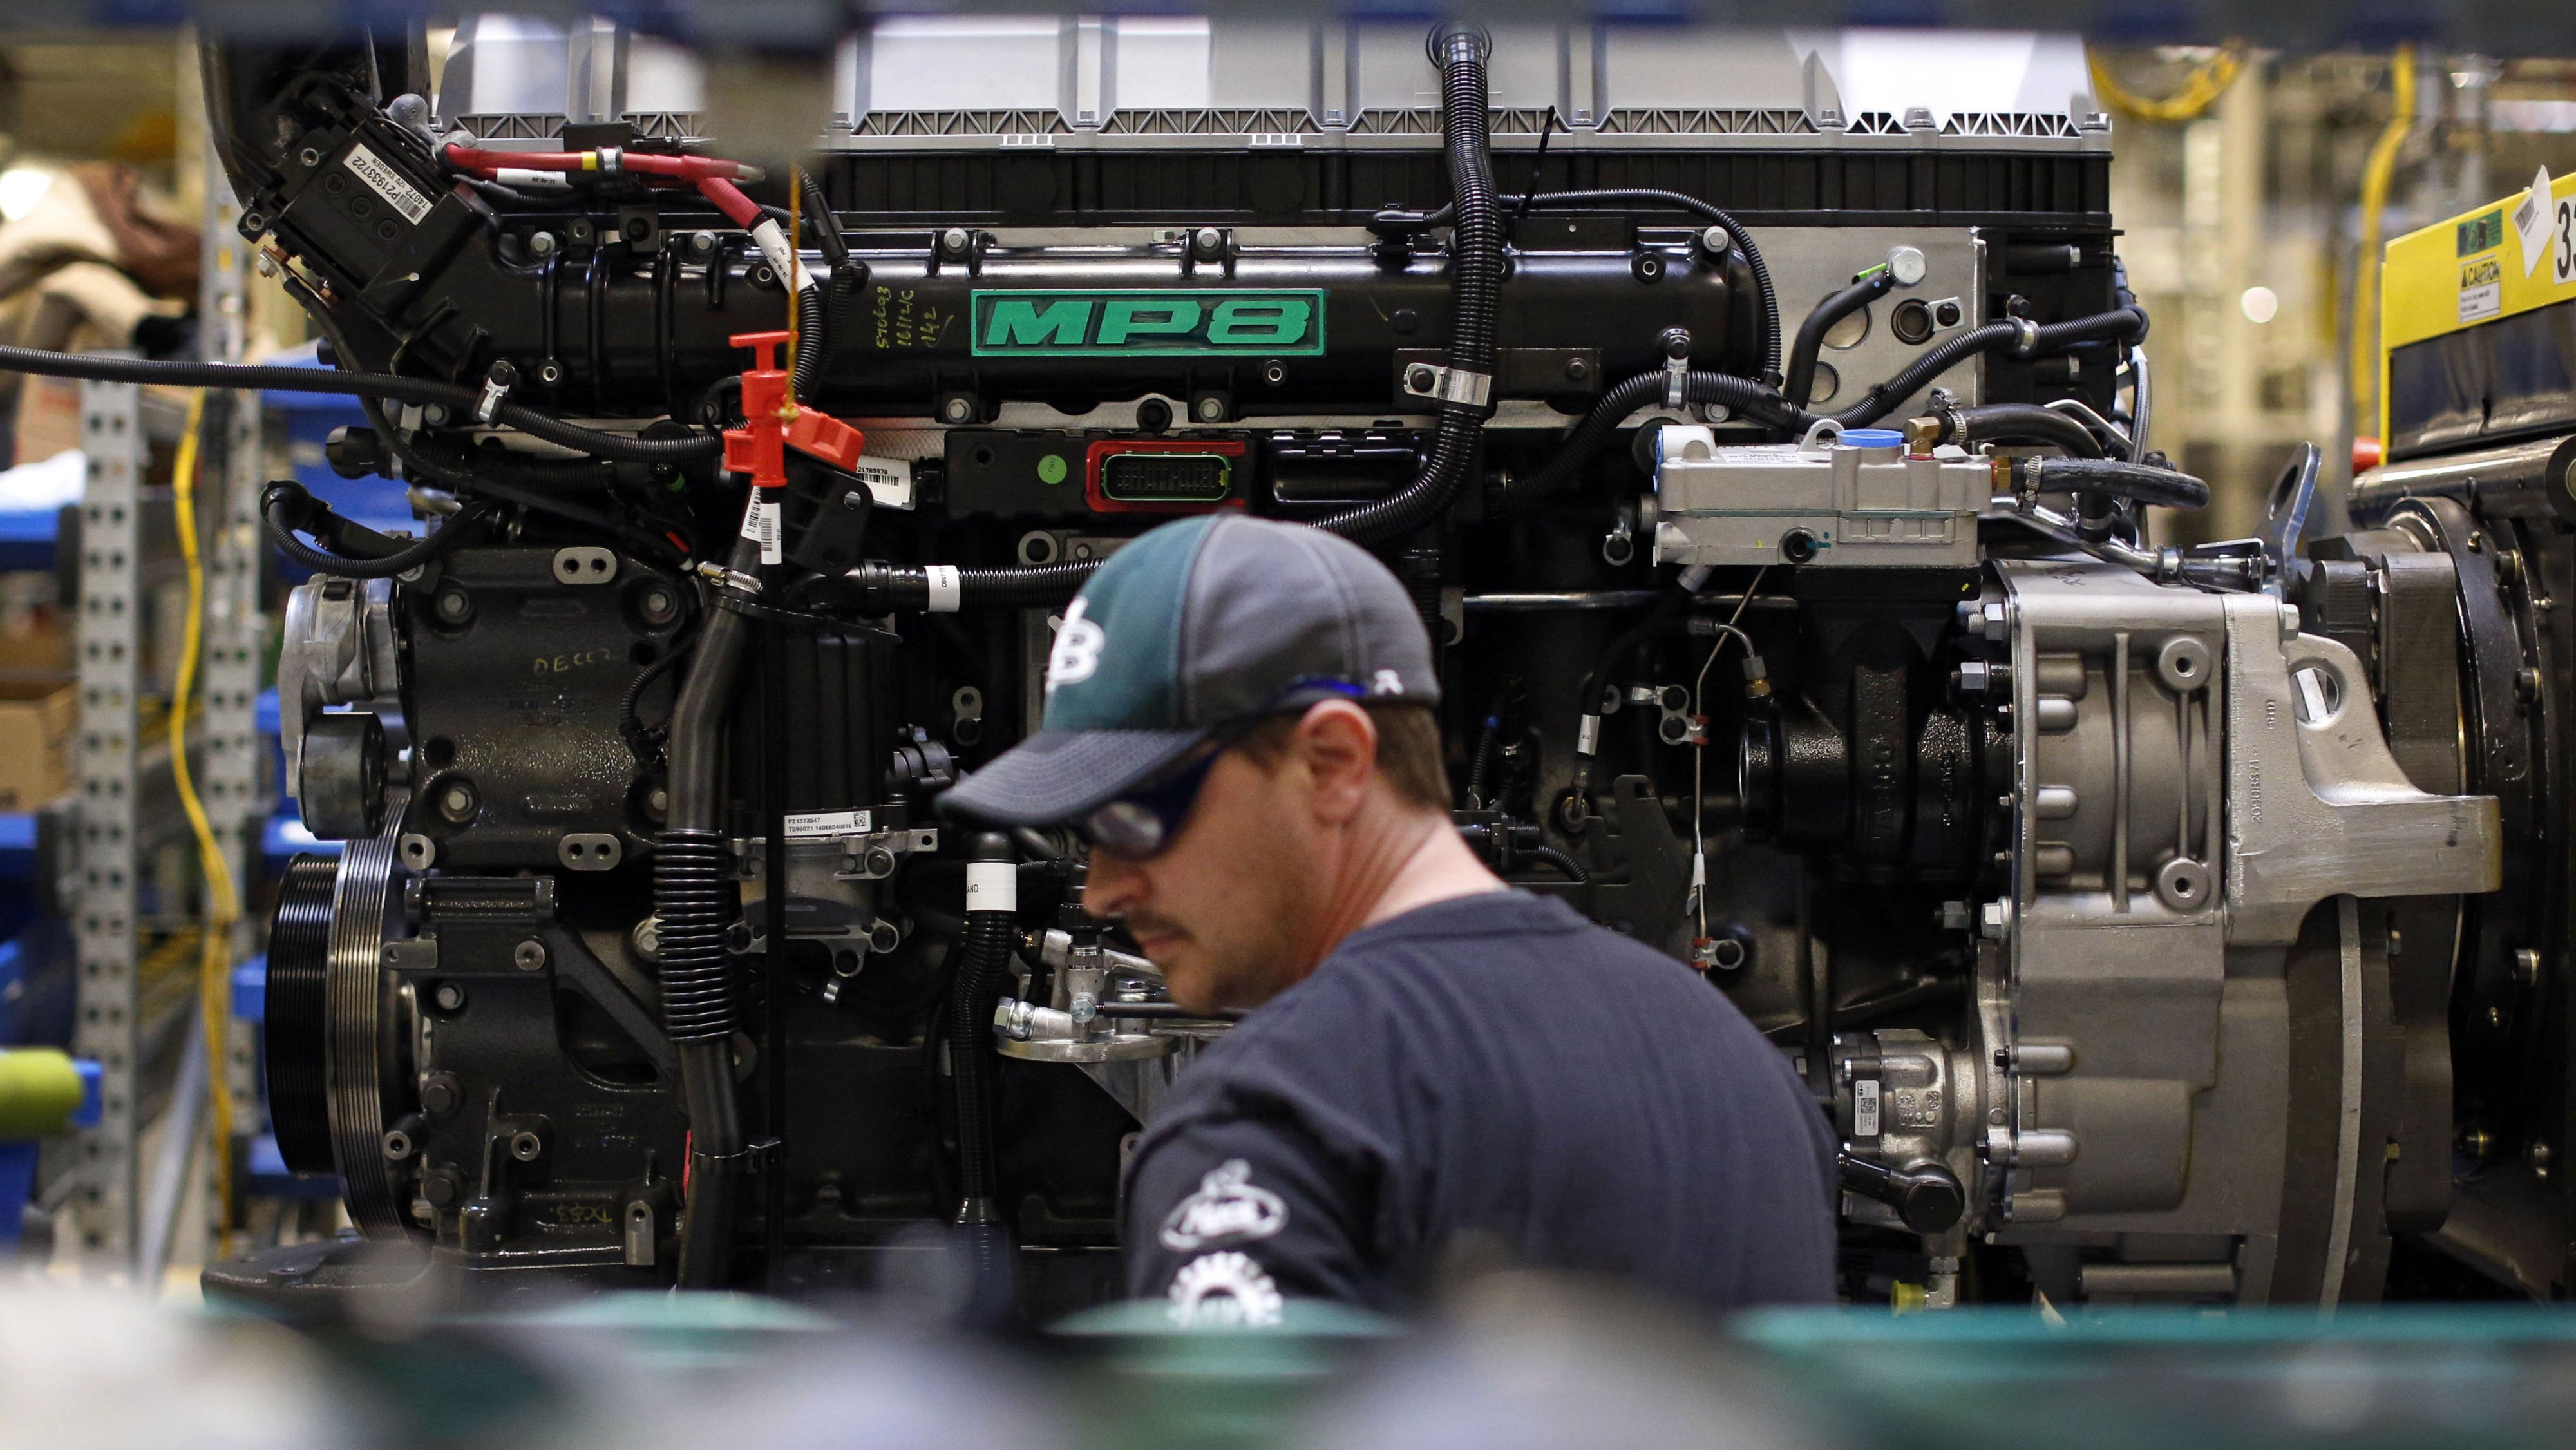 In this March 26, 2014 picture, Ed Carbaugh prepares to install parts on a truck engine on an assembly line at Volvo Trucks' powertrain manufacturing facility in Hagerstown, Md. The Federal Reserve reports on industrial production for April on Thursday, May 15, 2014. (AP Photo/Patrick Semansky)